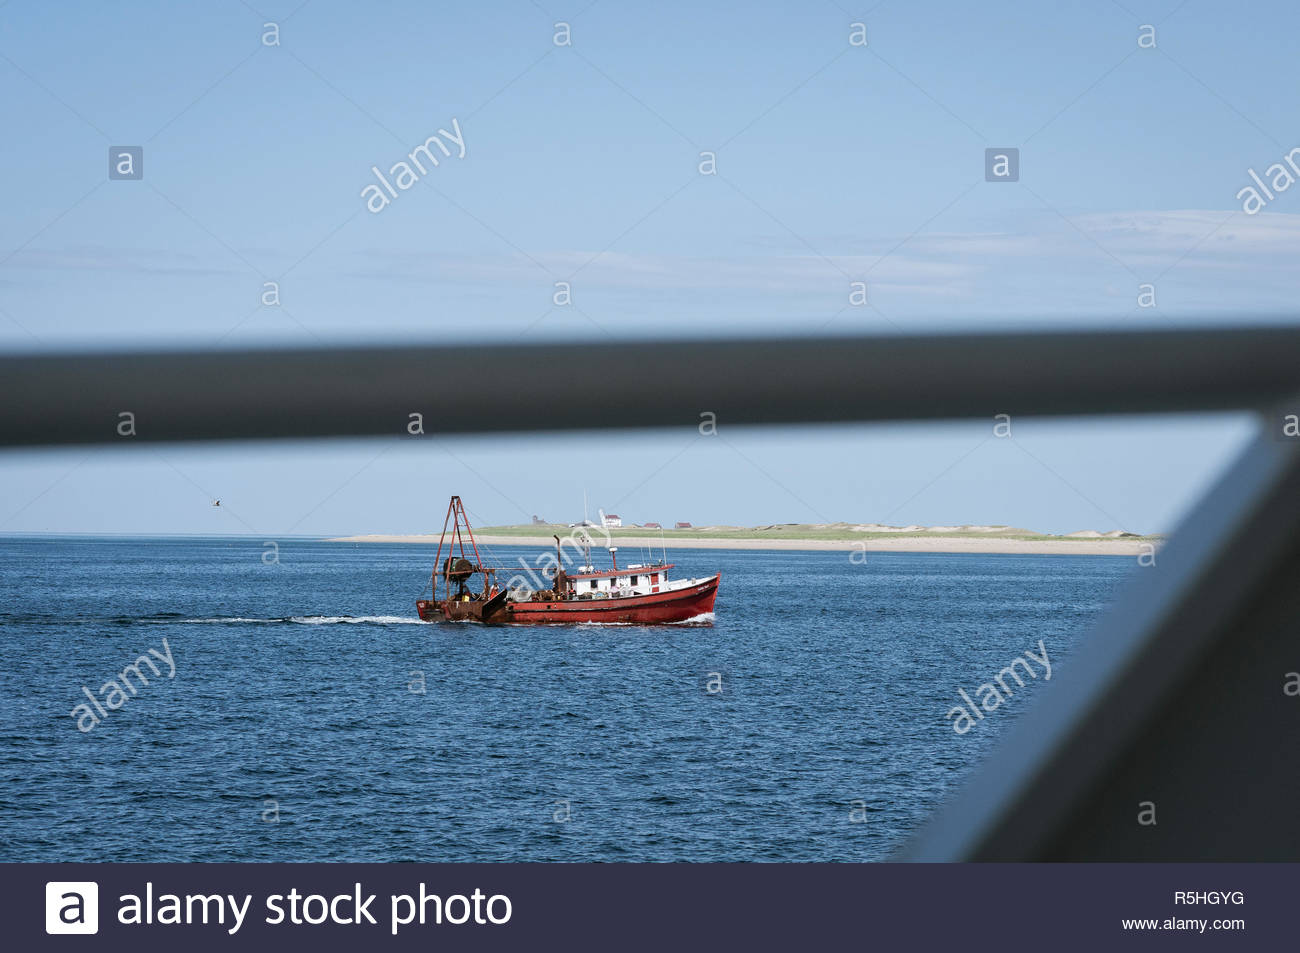 Provincetown, Massachusetts, USA - June 2, 2008: Fishing boat Ancora Praia off Provinctown framed by railing on whalewatch boat - Stock Image